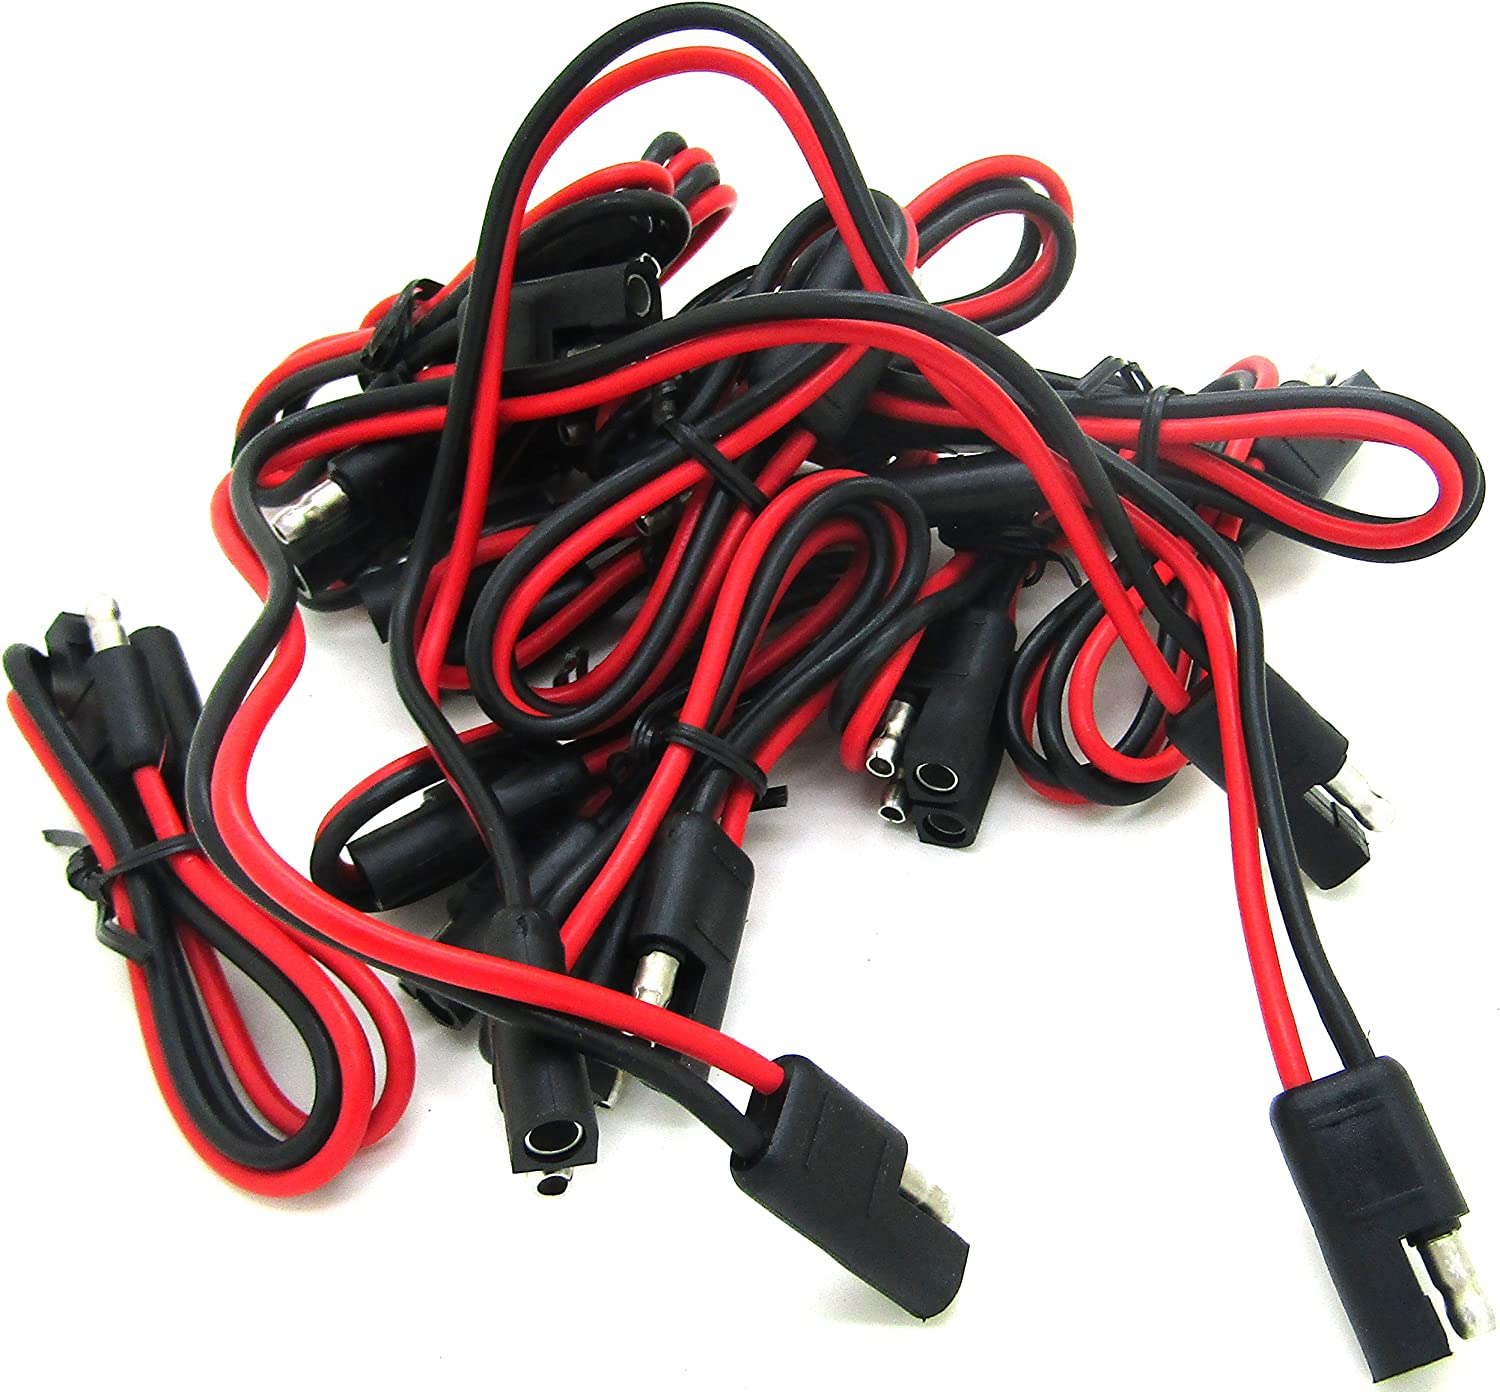 quick disconnect wiring harness amazon com  qty 20  12 gauge 2 pin quick disconnect wire harness  12 gauge 2 pin quick disconnect wire